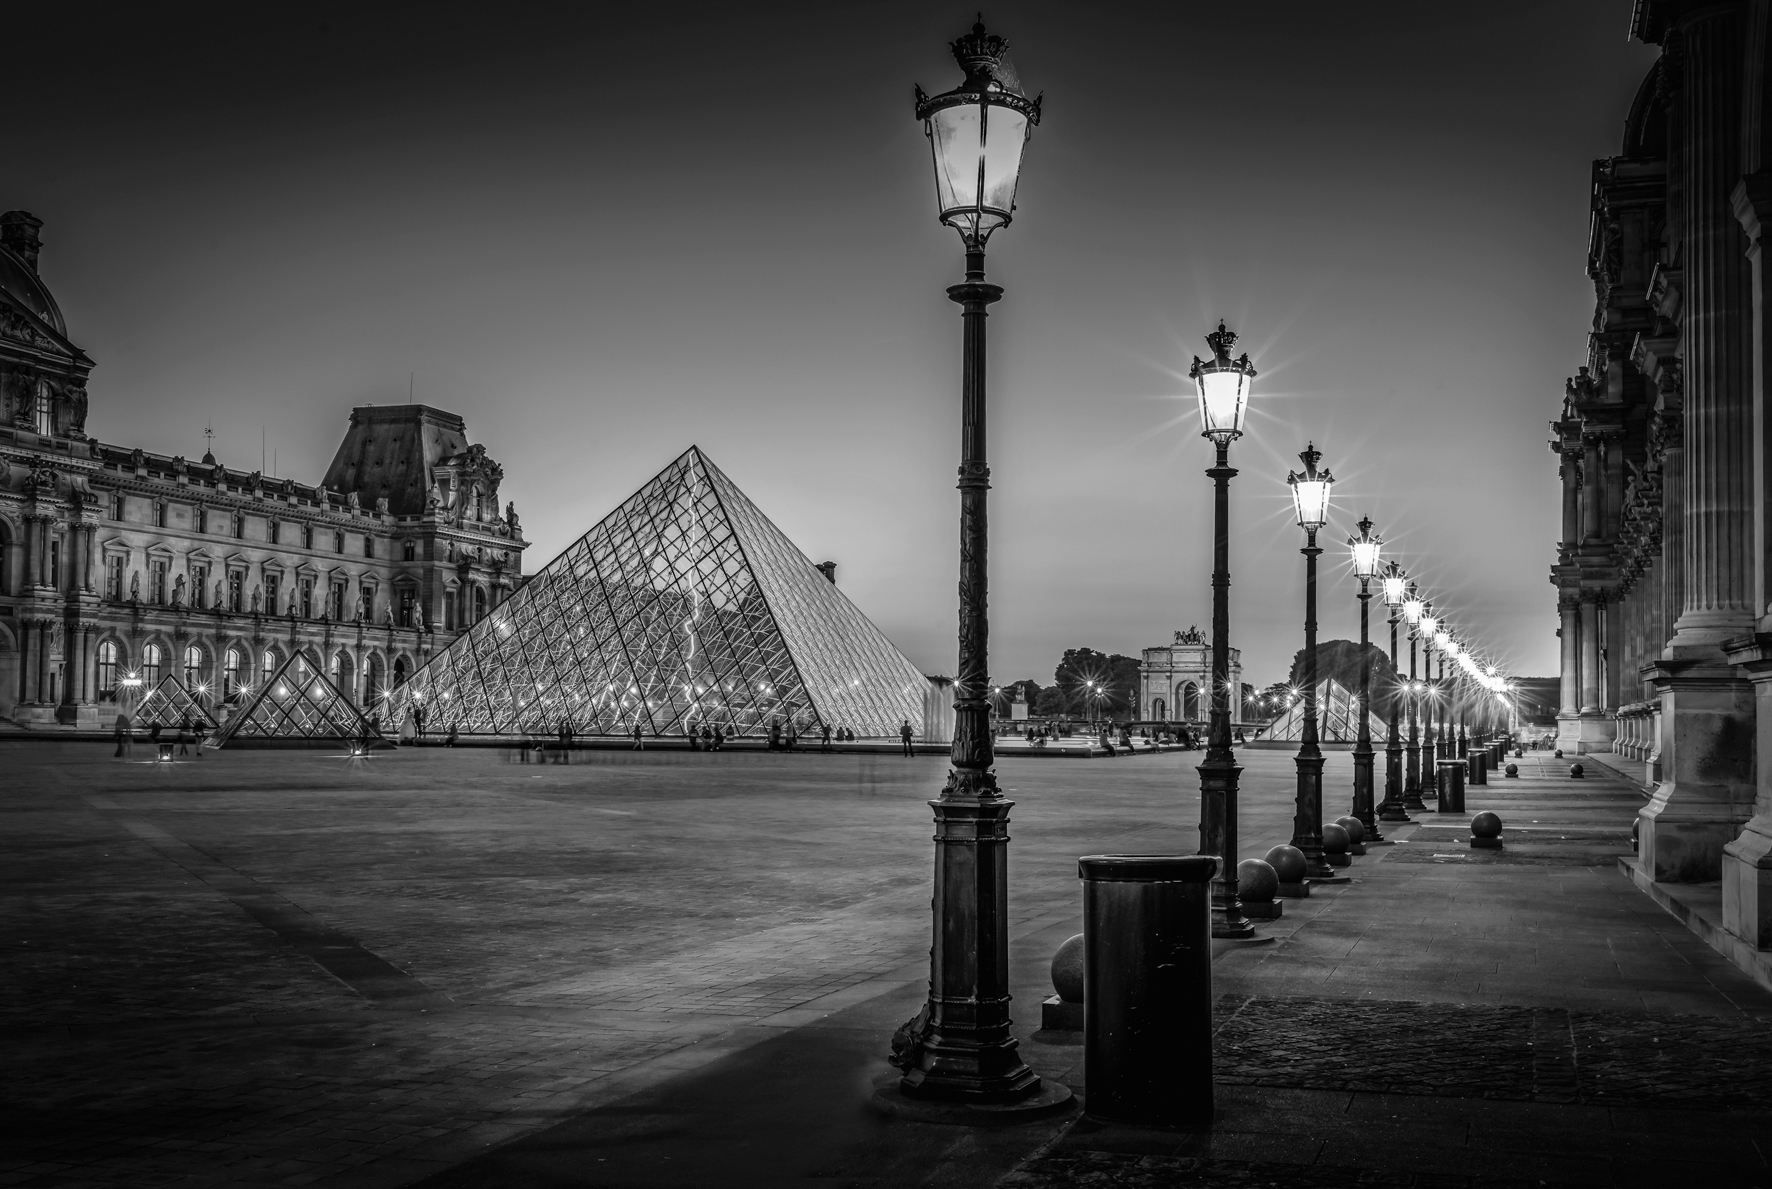 © Paris by Serge Ramelli, to be published by teNeues in March 2015, € 59,90,  www.teneues.com  .  THE LOUVRE AT NIGHT,  Photo © 2015 Serge Ramelli and YellowKorner. All rights reserved.